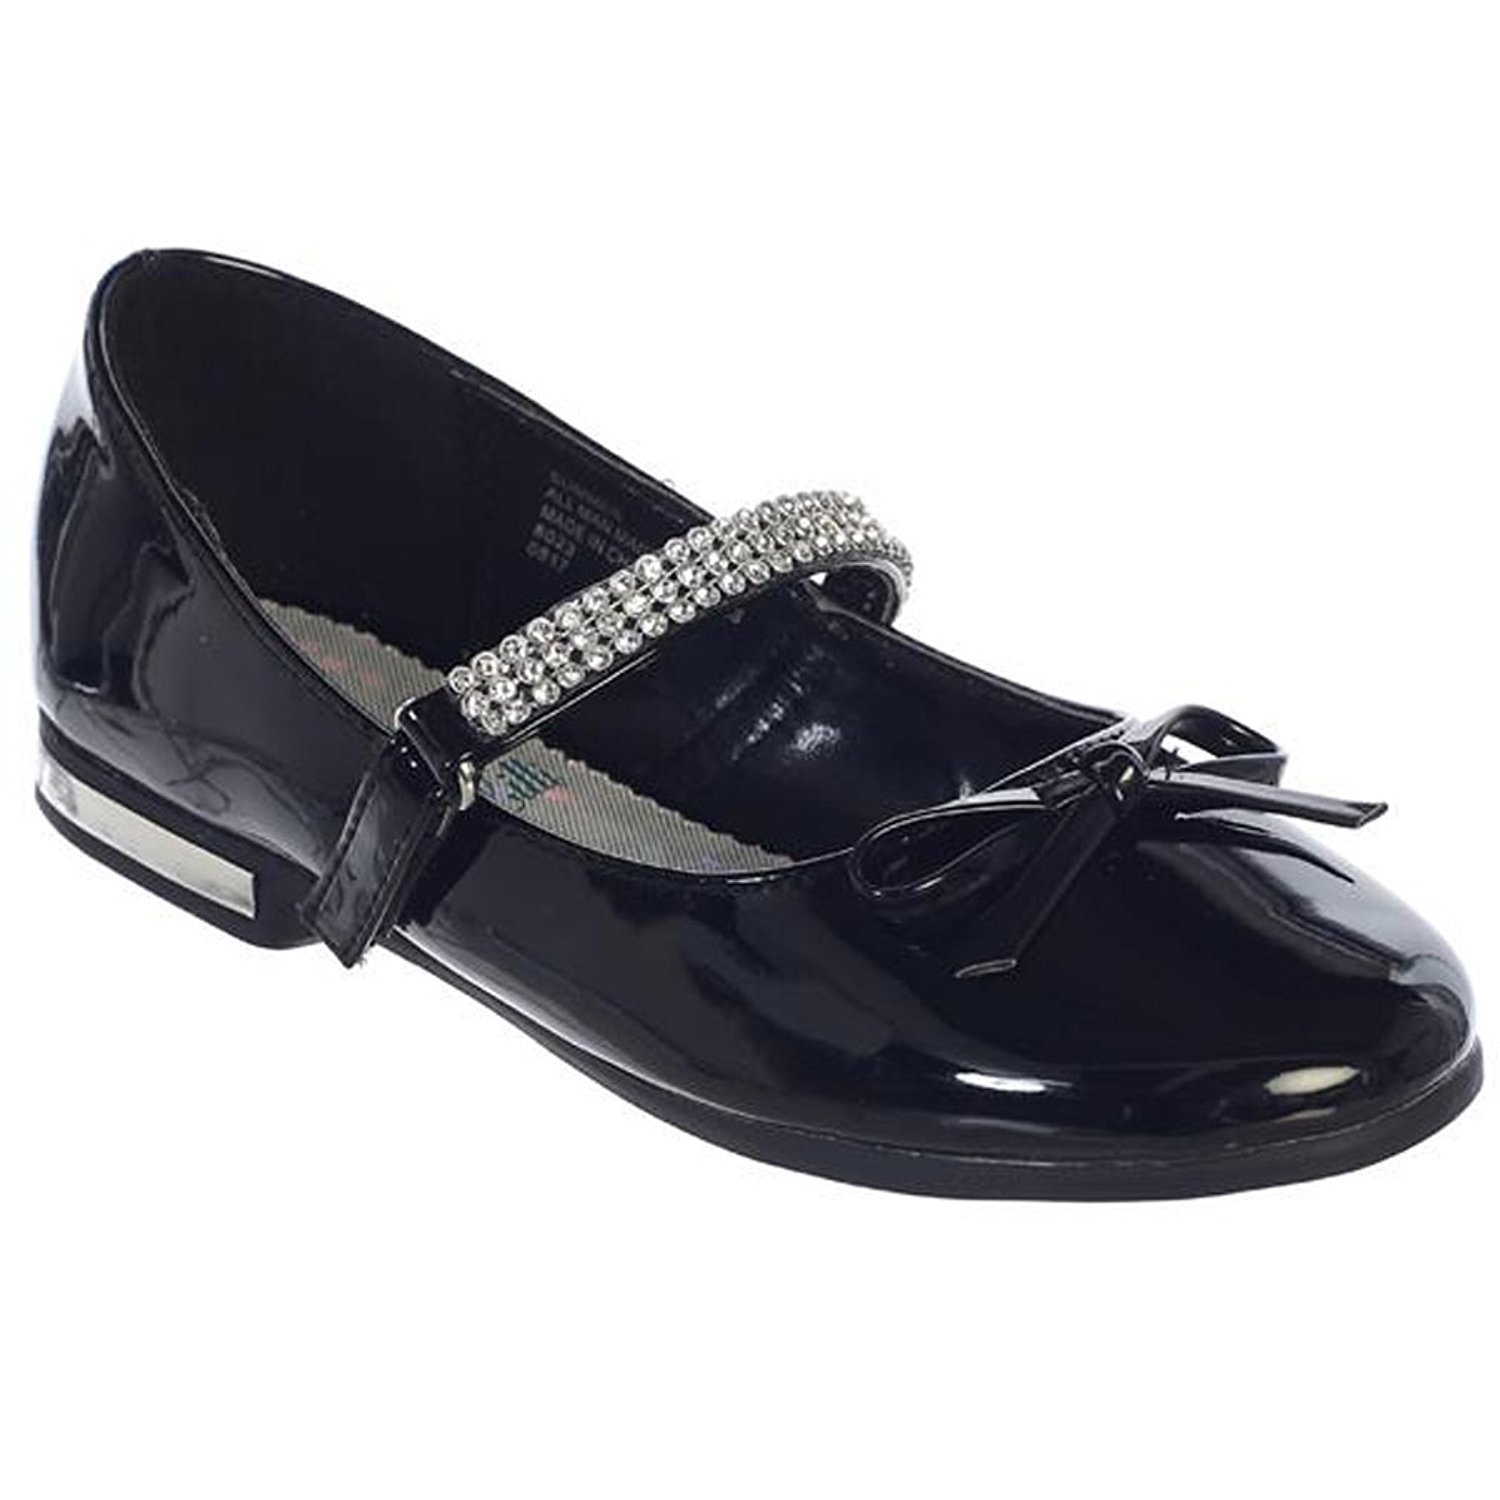 Cheap Youth Girls Dress Shoes, find